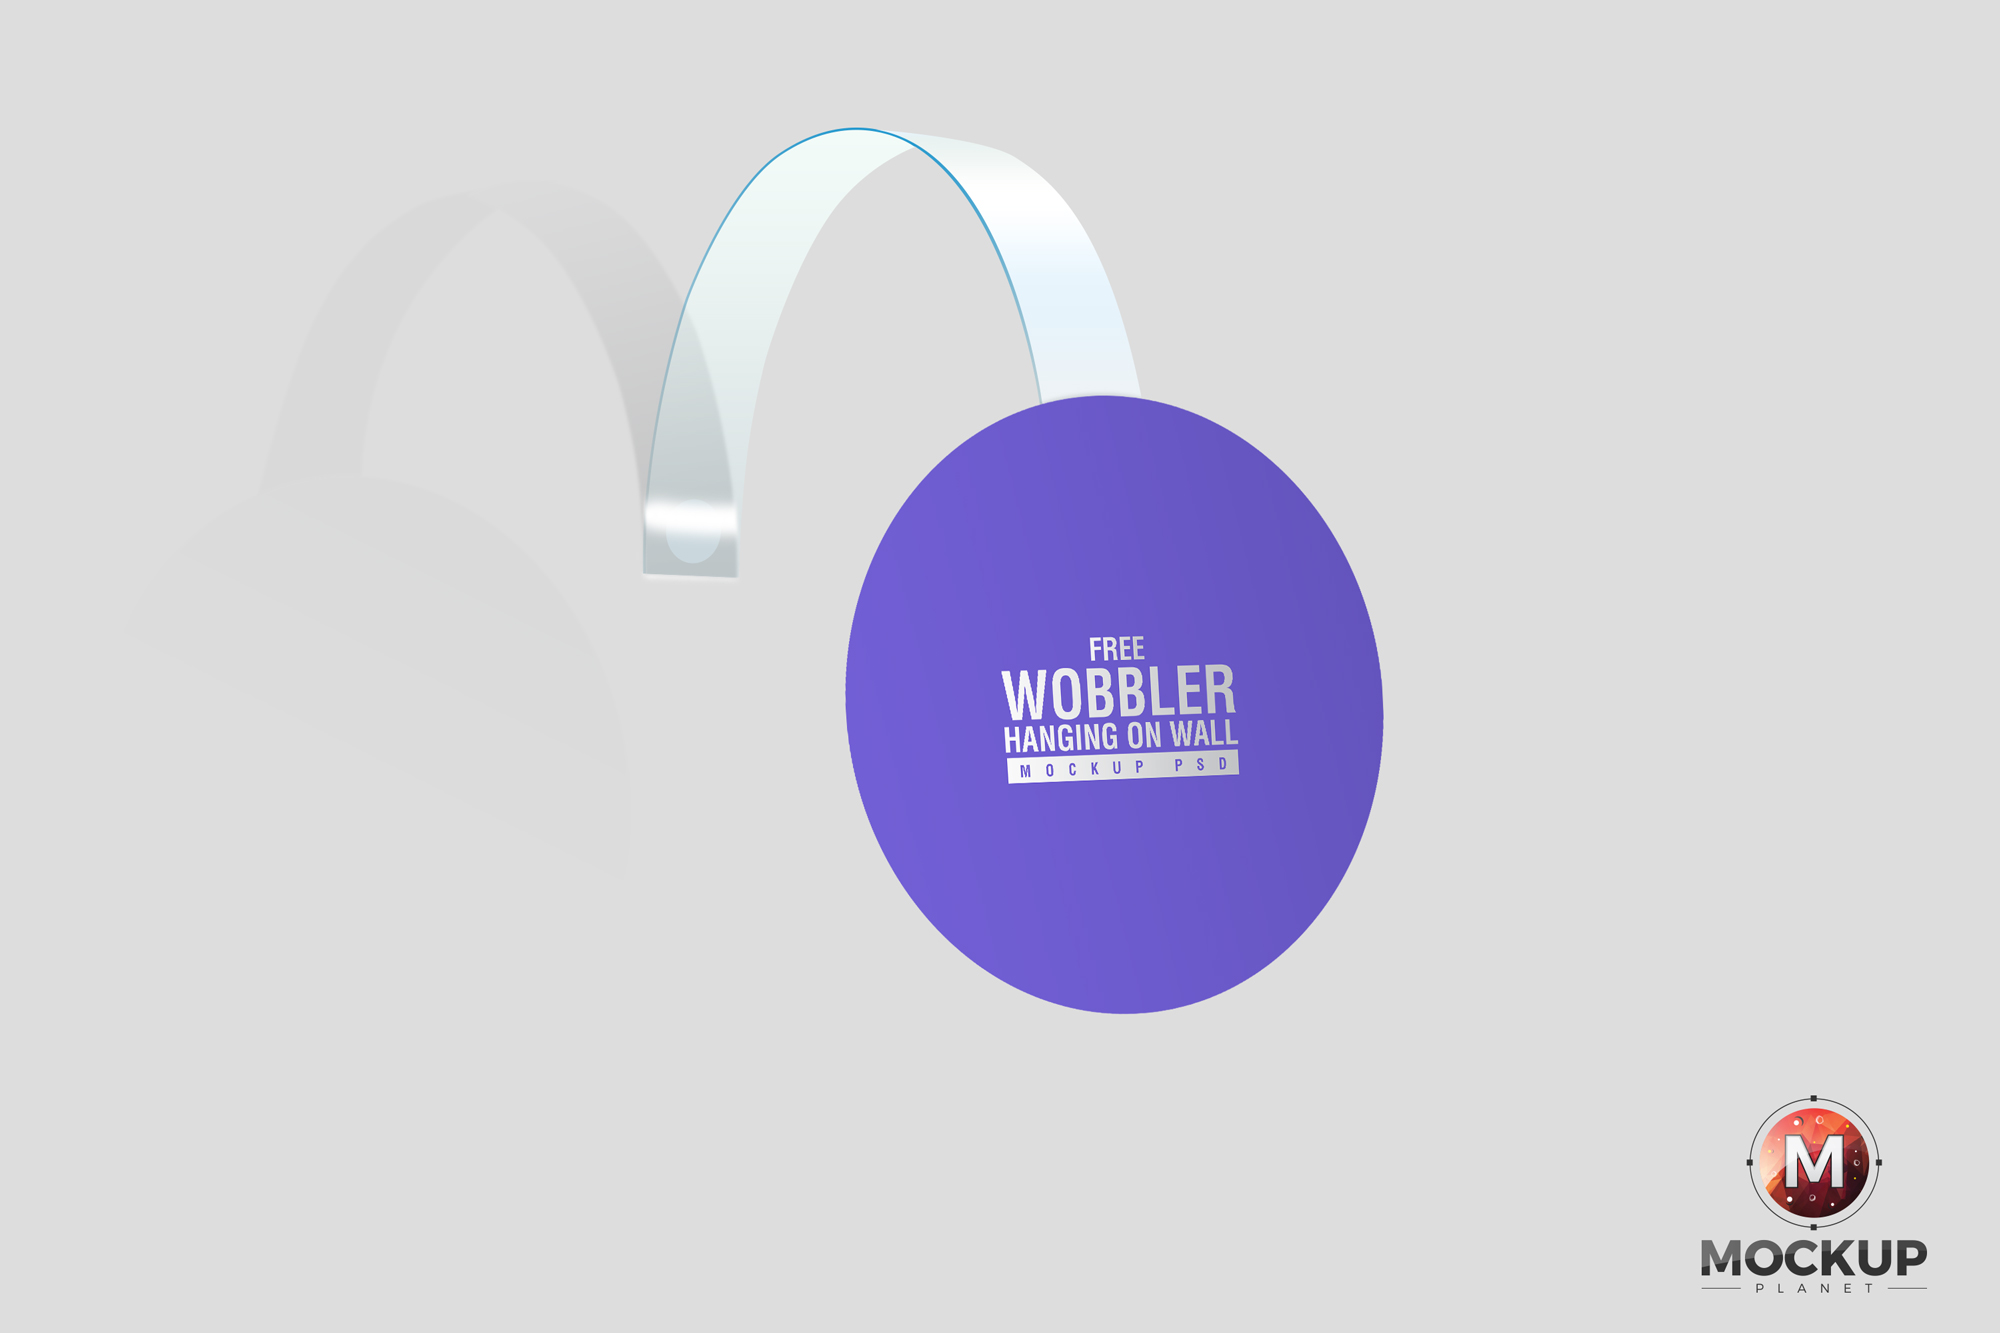 Free-Wobbler-Hanging-on-Wall-Mockup-PSD